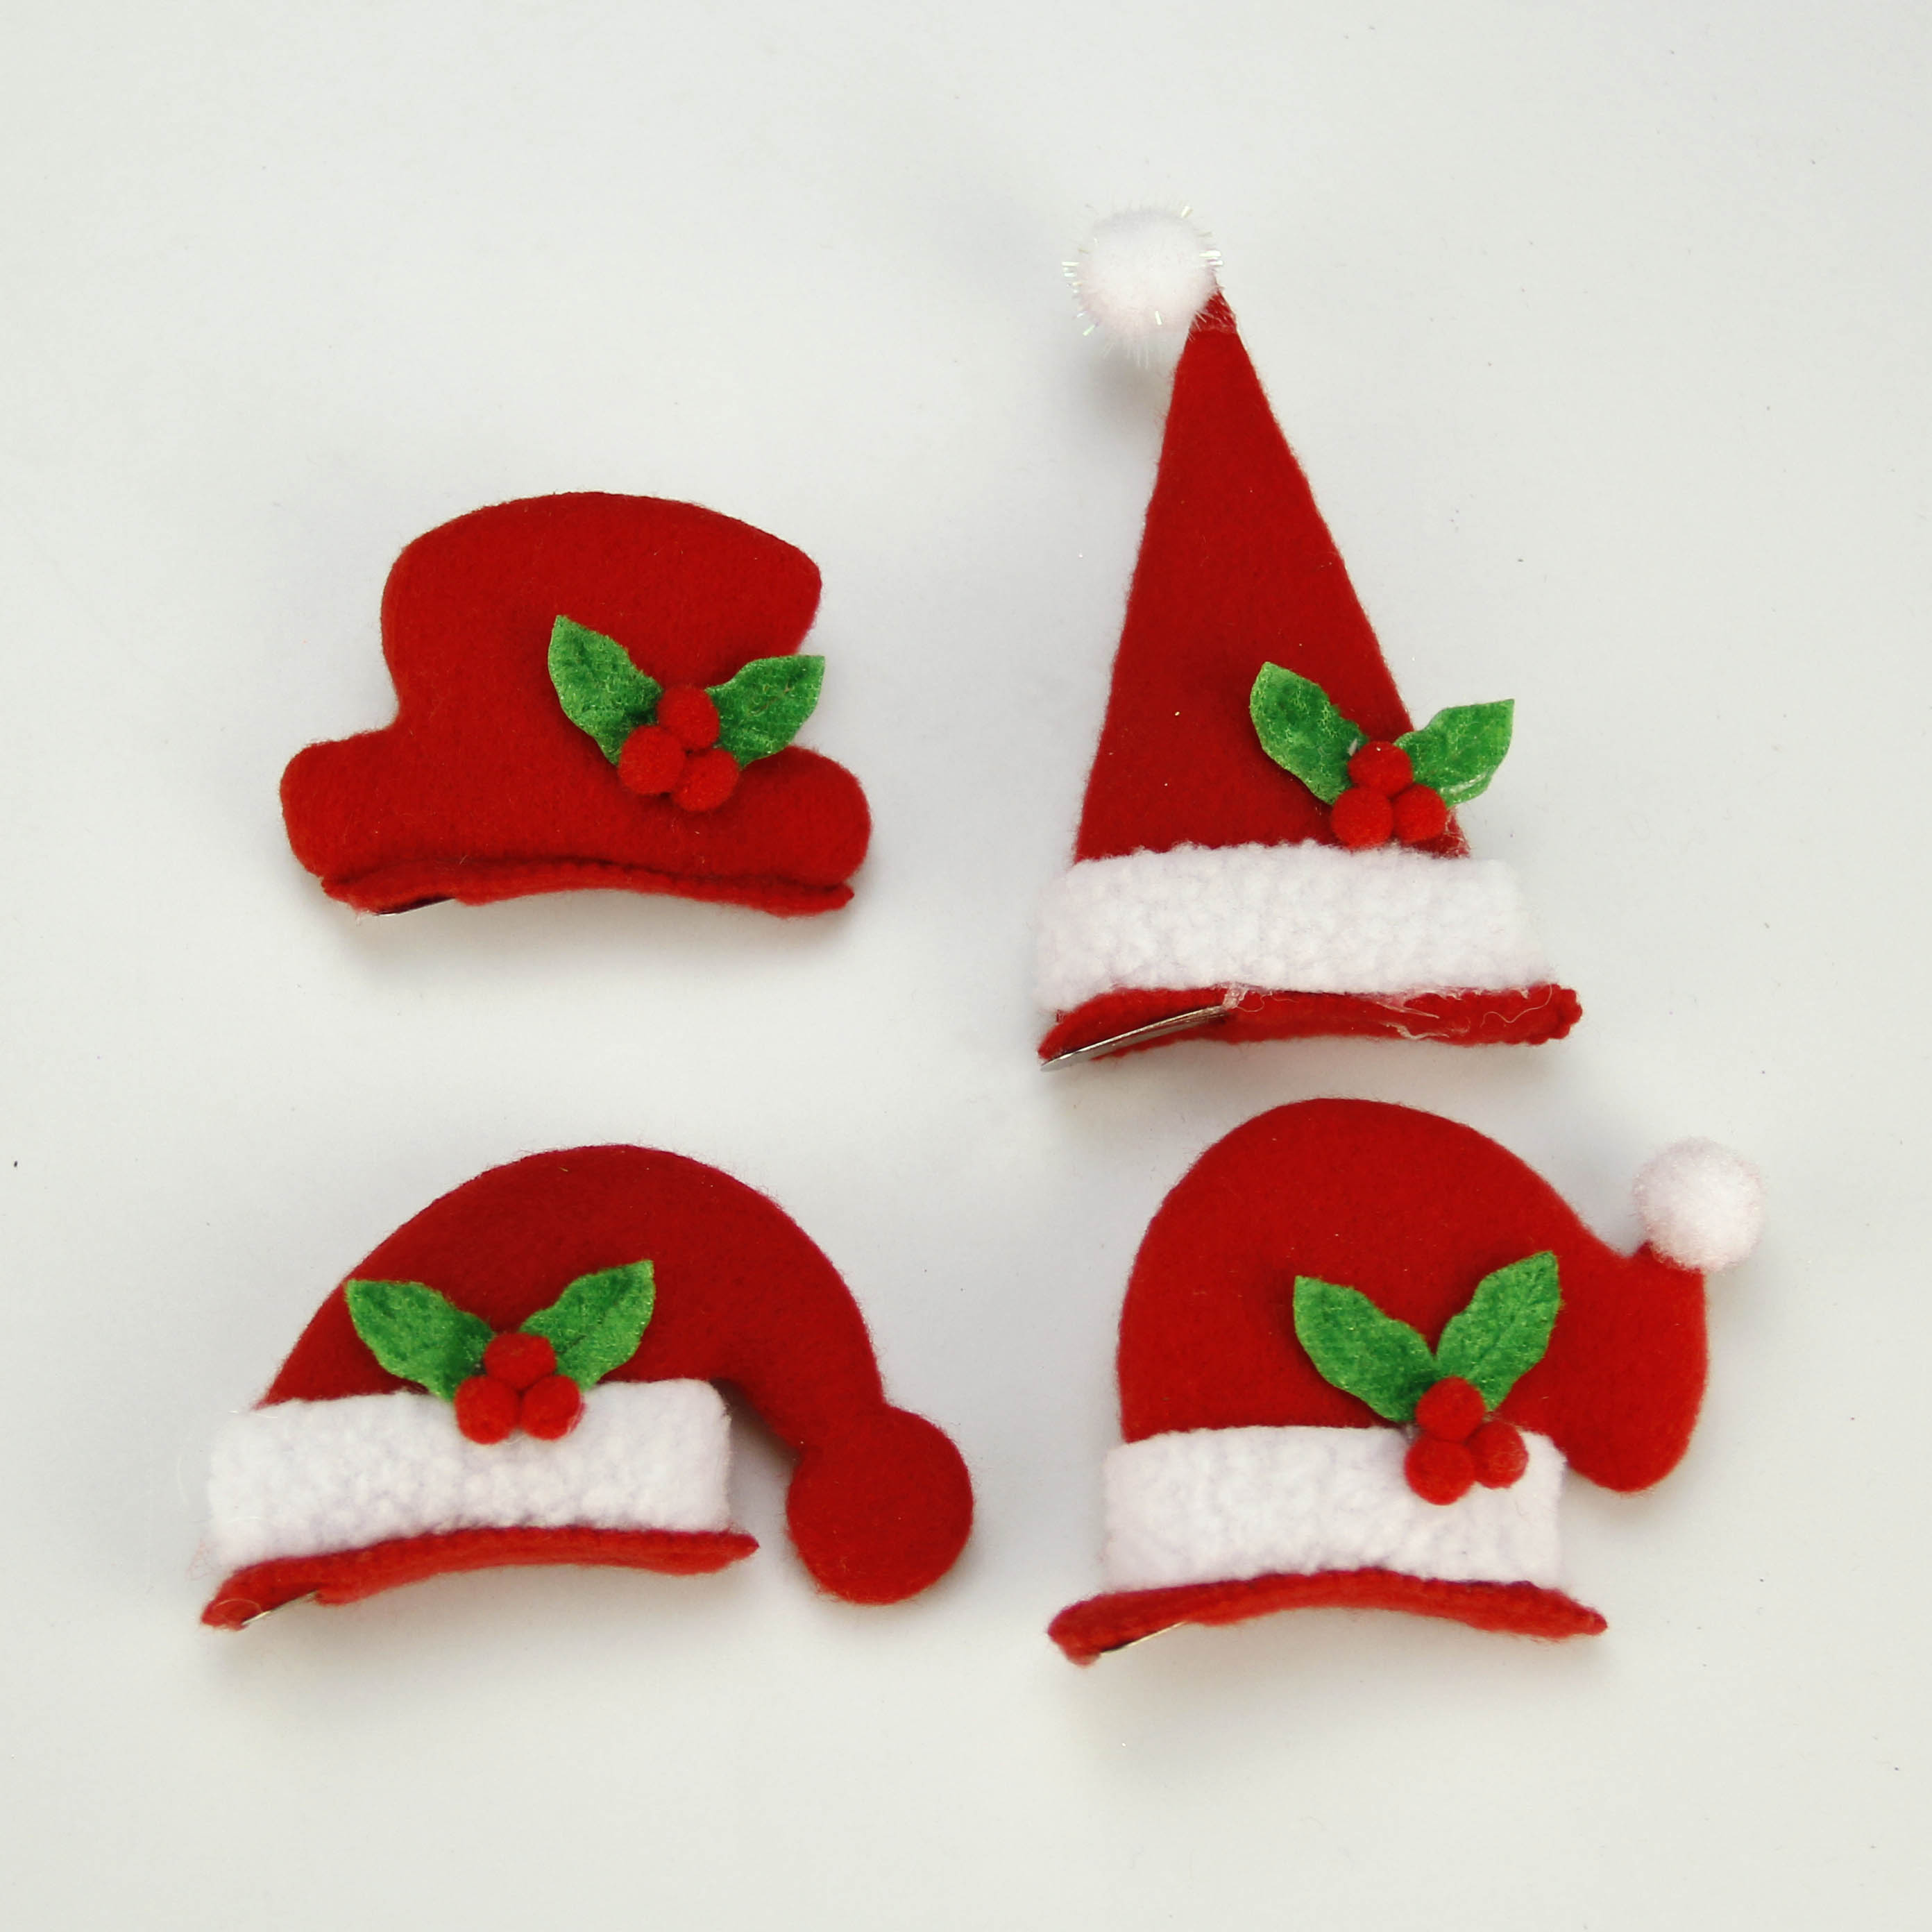 Zhe xi shun red cloth hairpin headdress christmas party 4 models optional christmas decorations christmas card issuers